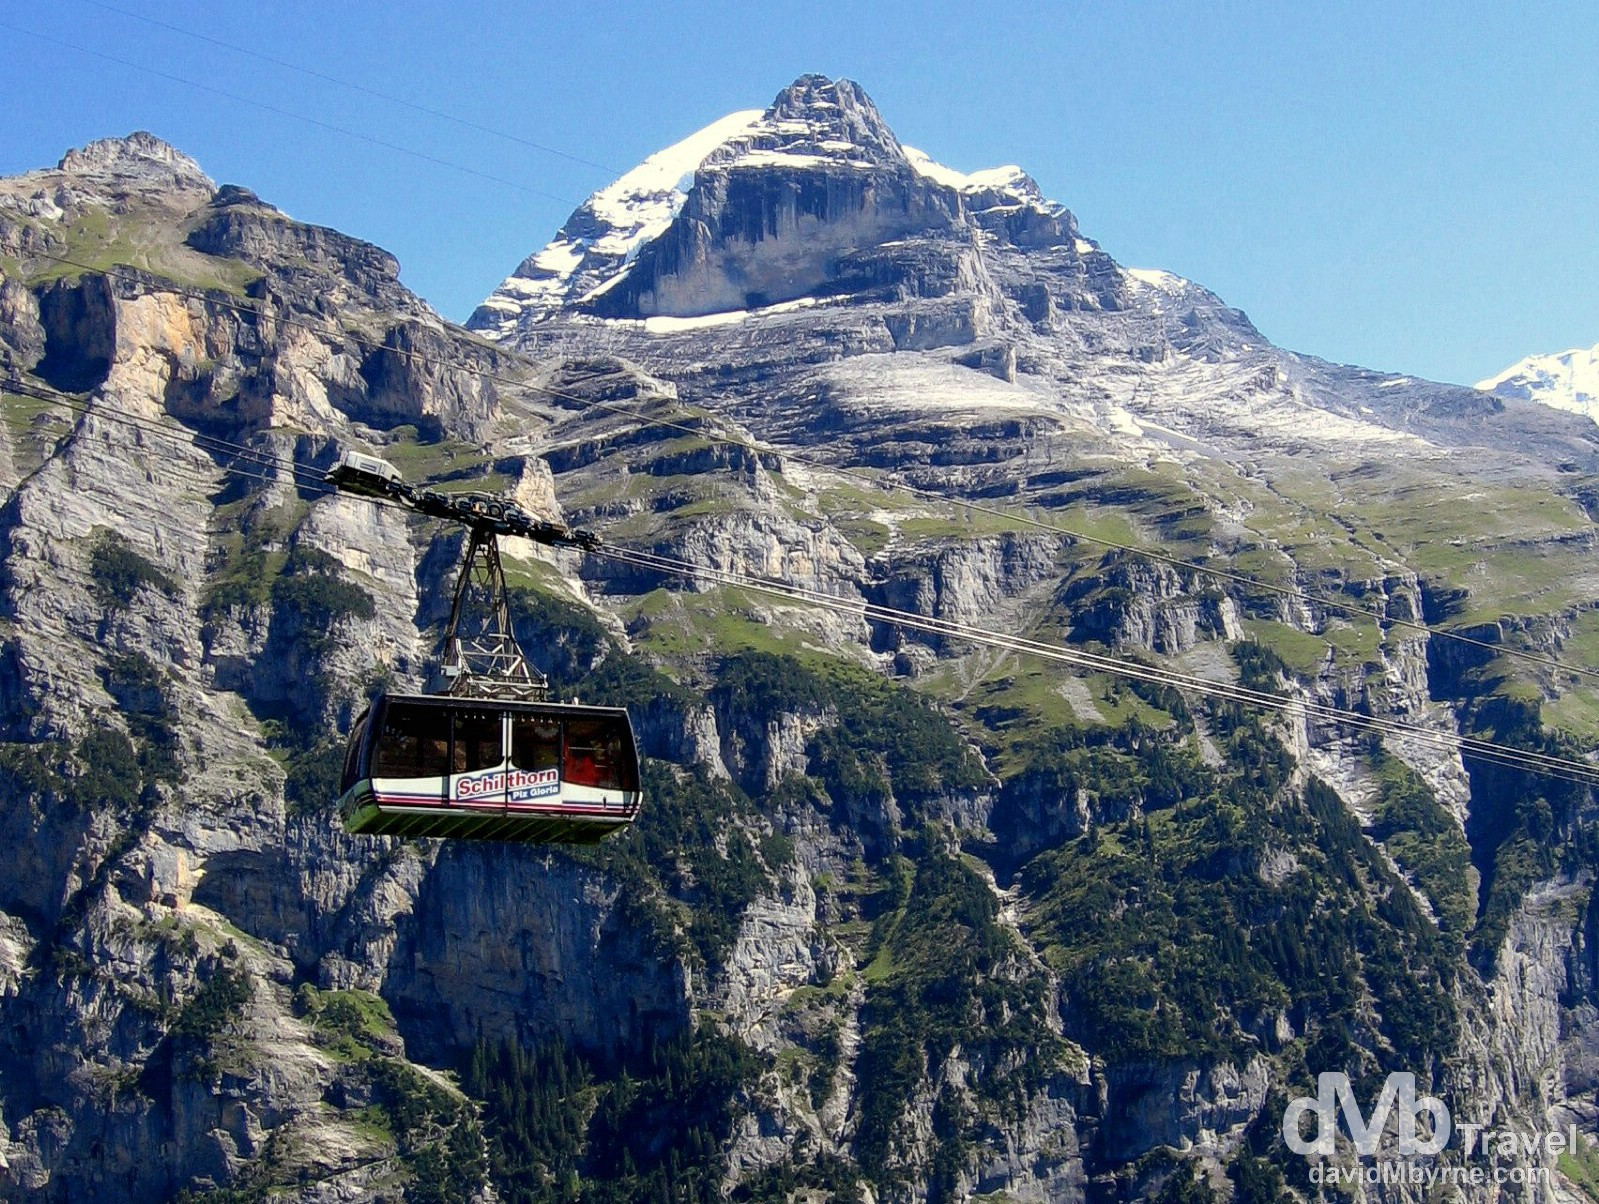 The Schilthorn Cable Car in the Jungfrau region of the Swiss Alps, Switzerland. August 25th, 2007.